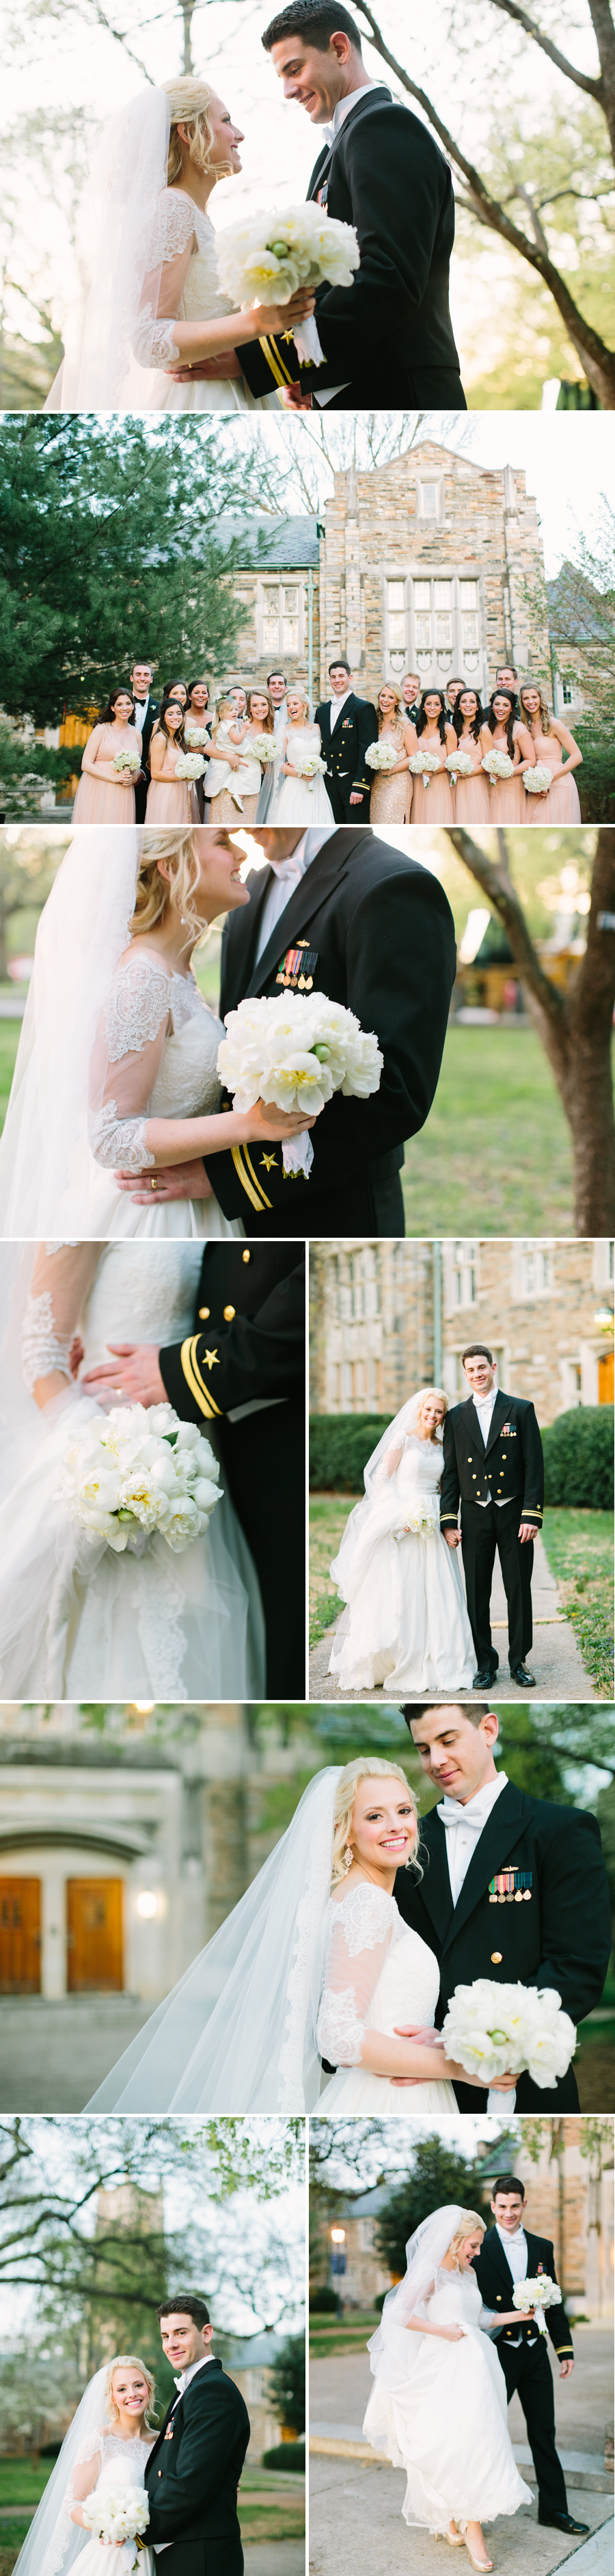 Nashville Wedding Photography Rachel Moore